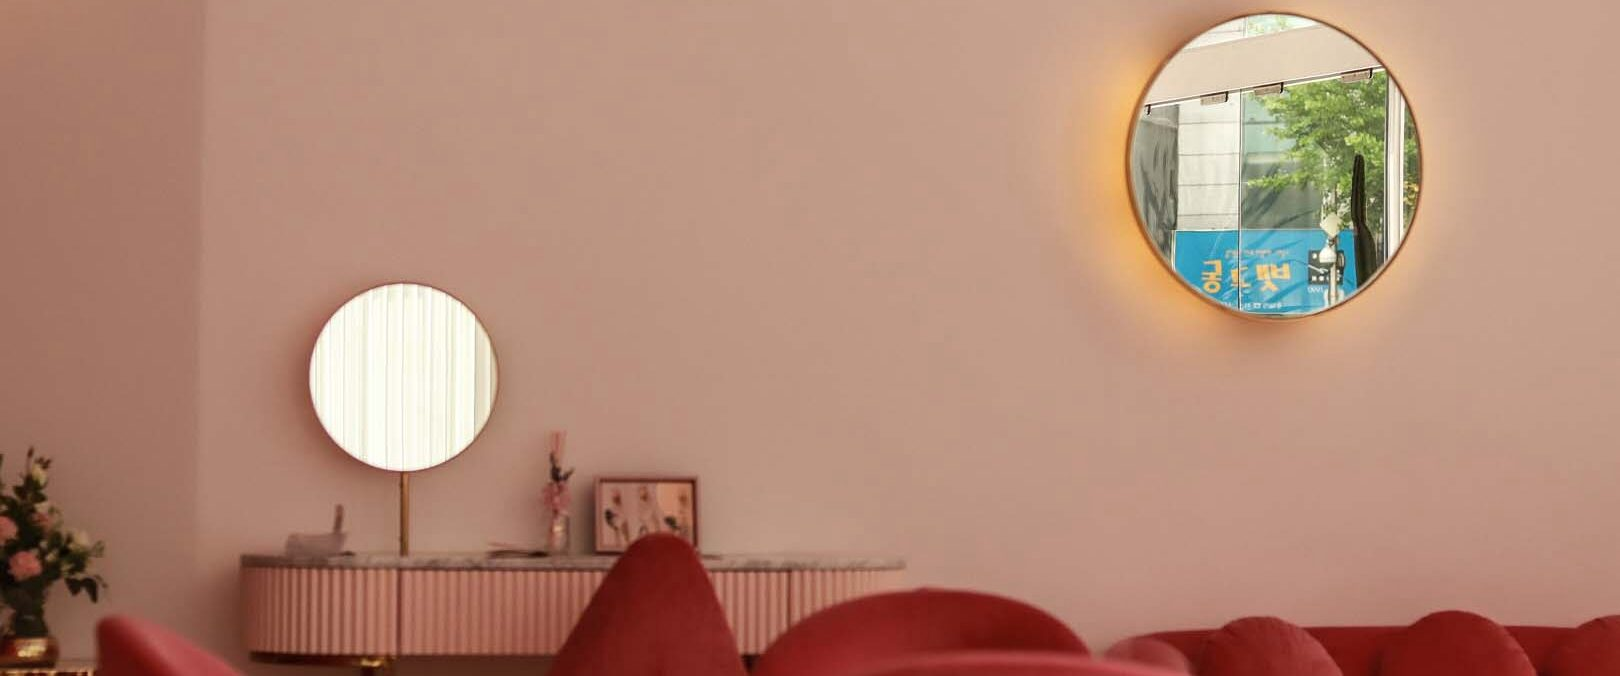 7 Amazing Ideas to Decorate Small Living Rooms